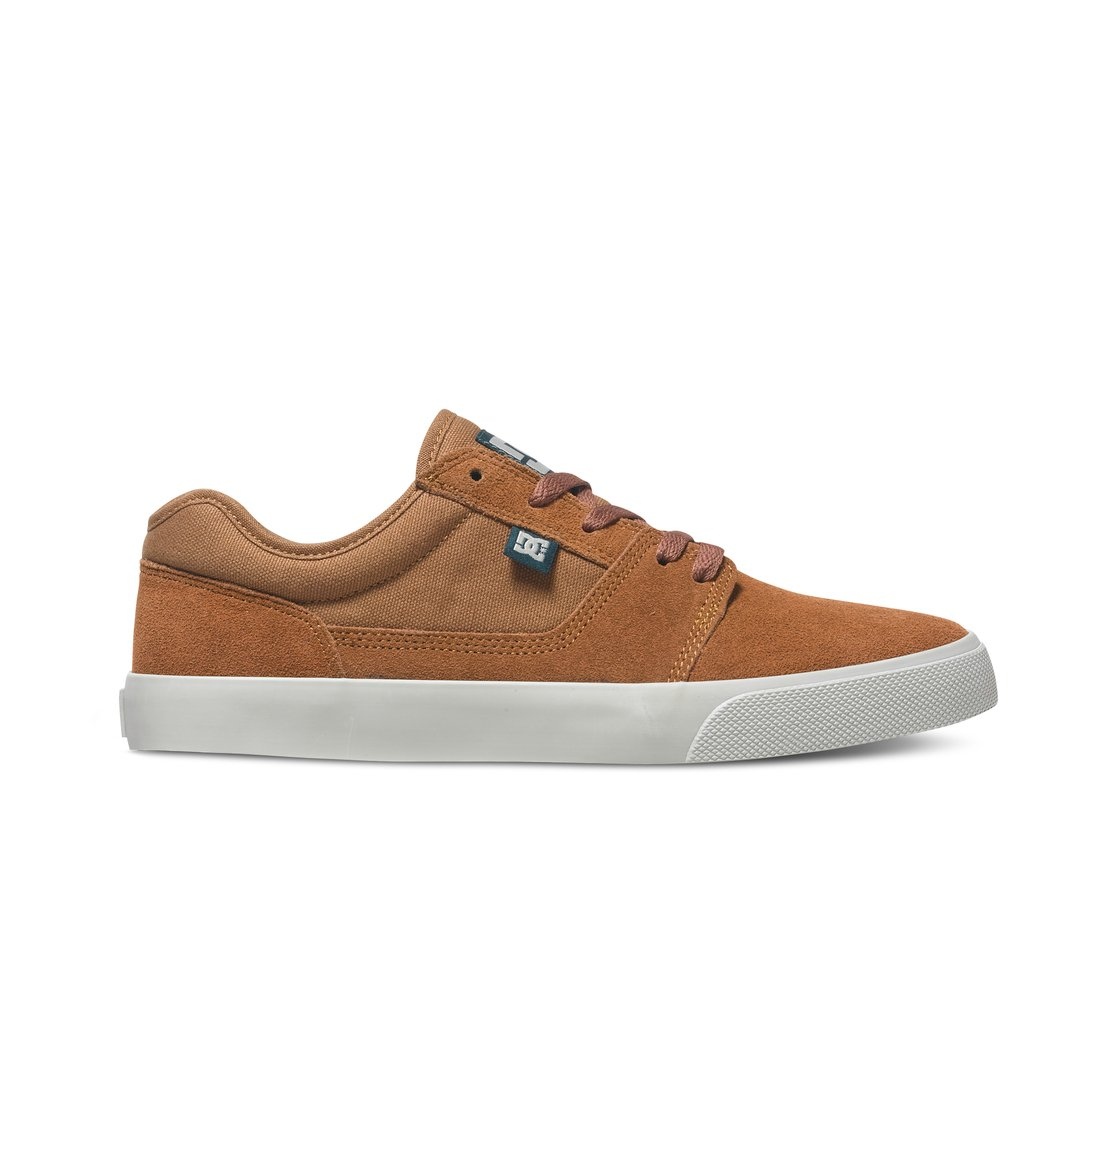 Tonik - Dcshoes������ ������� ���� Tonik �� DC Shoes. <br>��������������: ���� �� �������� � ������������ ����� Heavy Duty Suede, ����������������� ����������� ��� ����� ������� �������� �����, ������������� ���������� �������, ��������� ������� ���������� ������� DC Pill Pattern. <br>������: ����: ���� / ���������: �������� / �������: ������.<br>